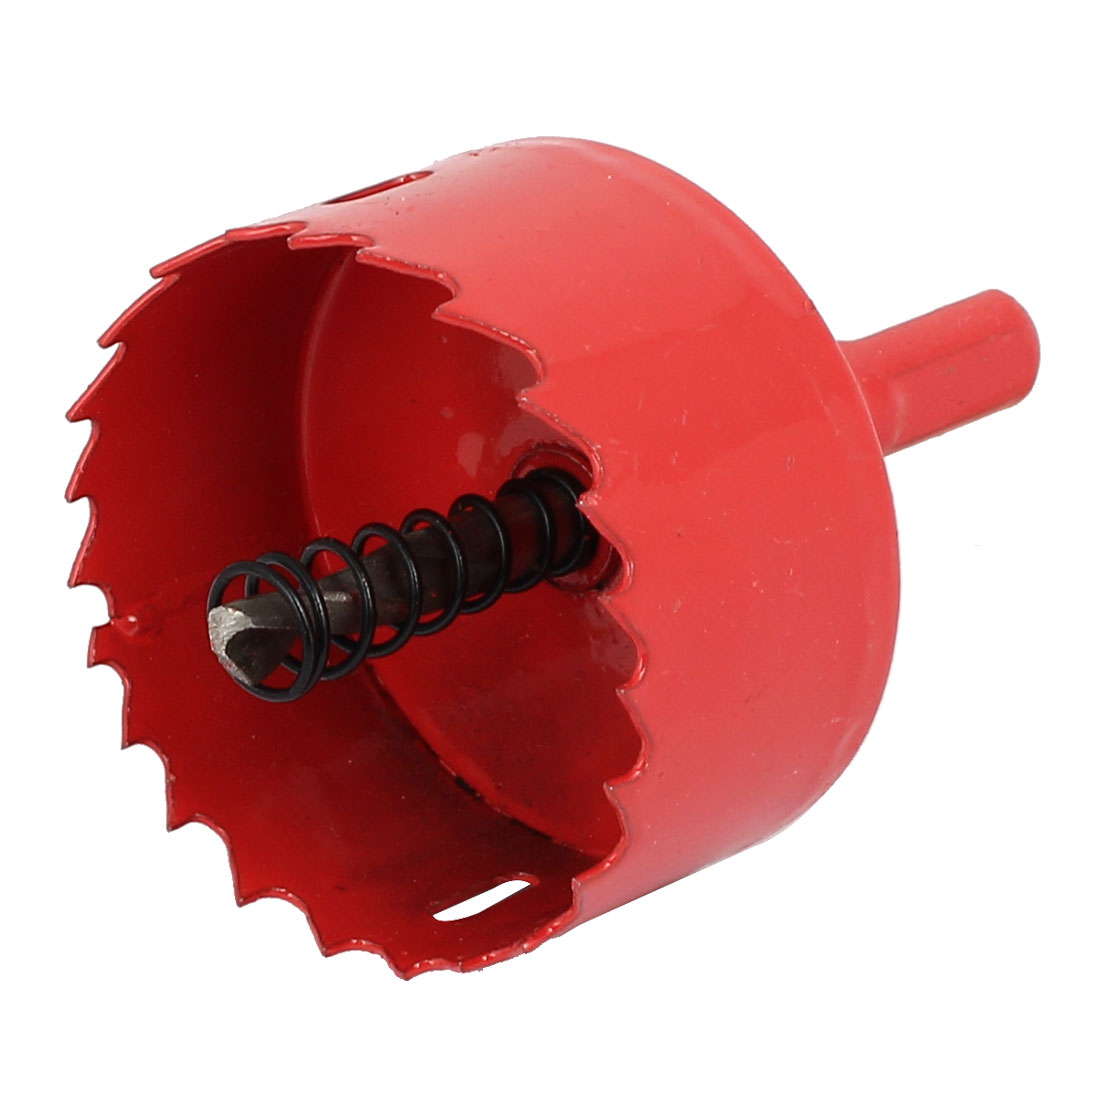 55mm Cutting Dia M42 HSS Spring Loaded Bi-Metal Hole Saw Drilling Tool Red